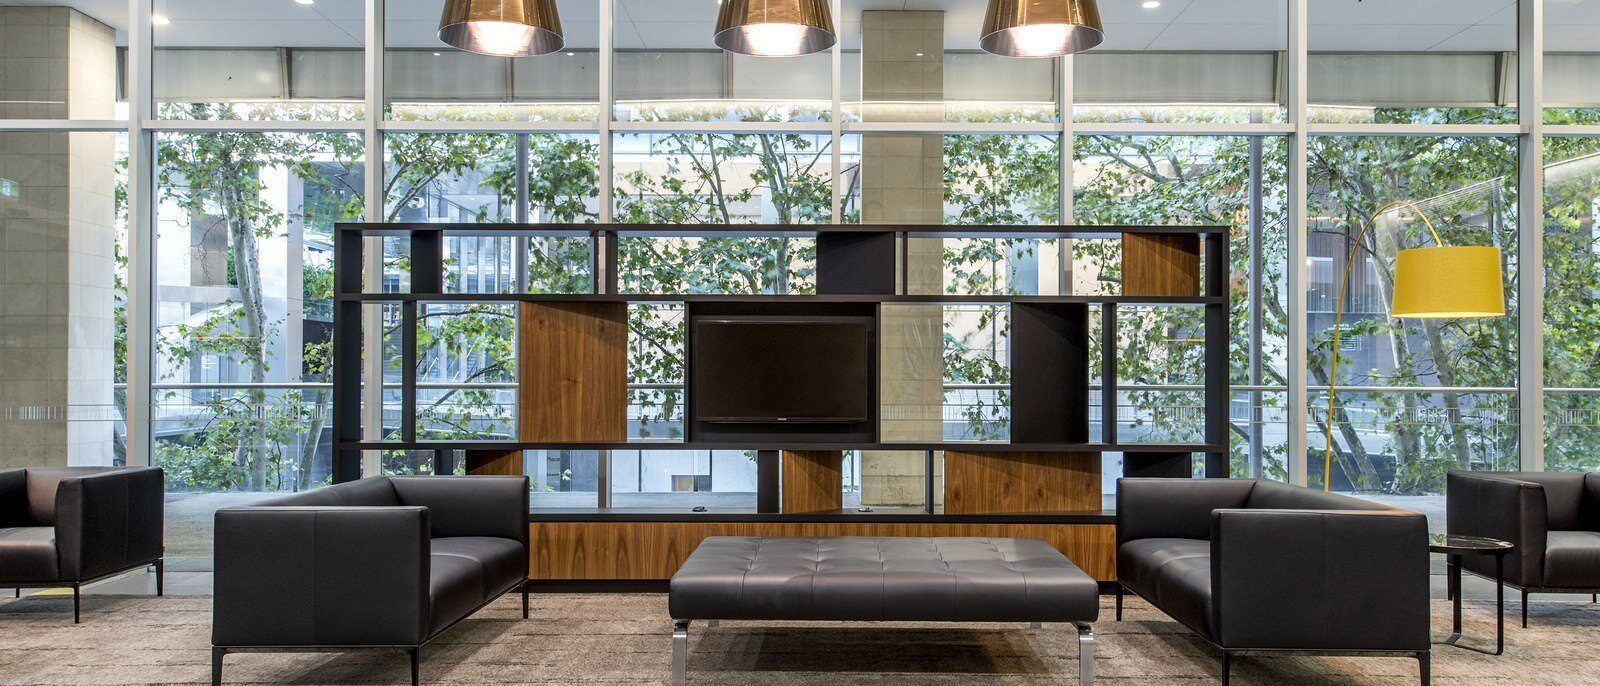 A sitting area in a lobby that has couches and a TV in a large piece of furniture.